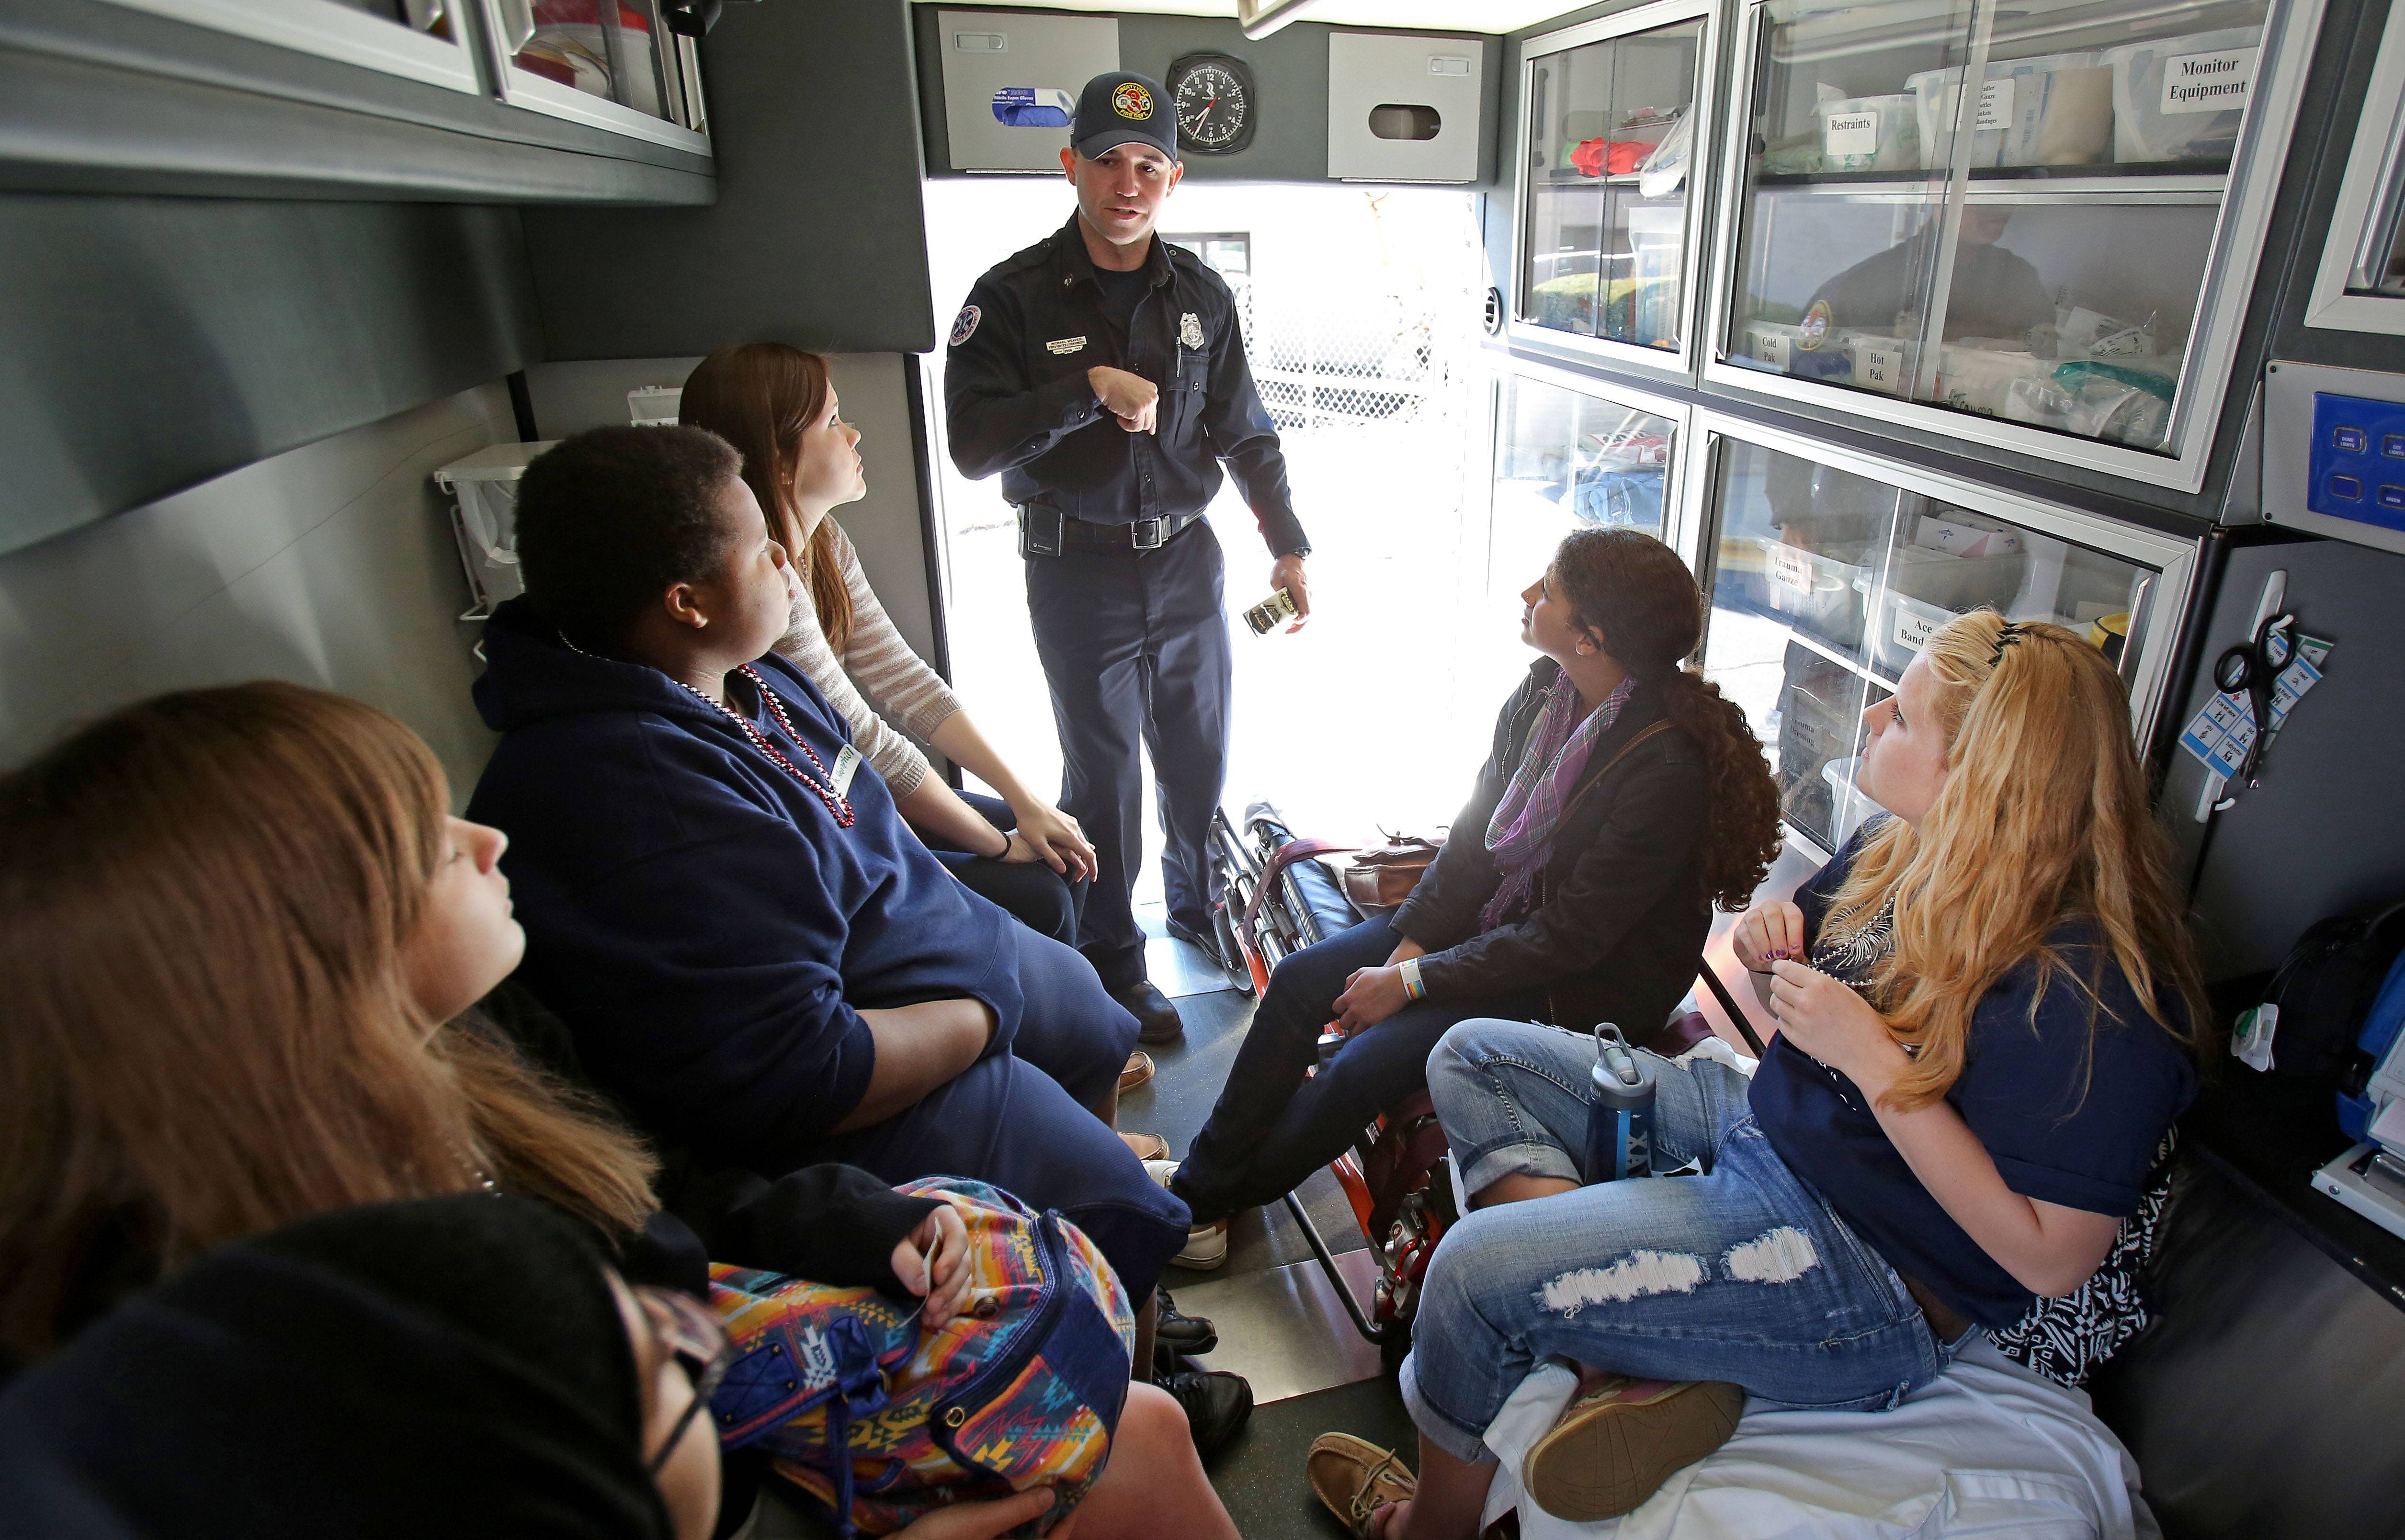 Libertyville Firefighter/Paramedic Mike Weaver offers Libertyville High School students a look inside an ambulance Friday during Trauma Day at Advocate Condell Medical Center in Libertyville.